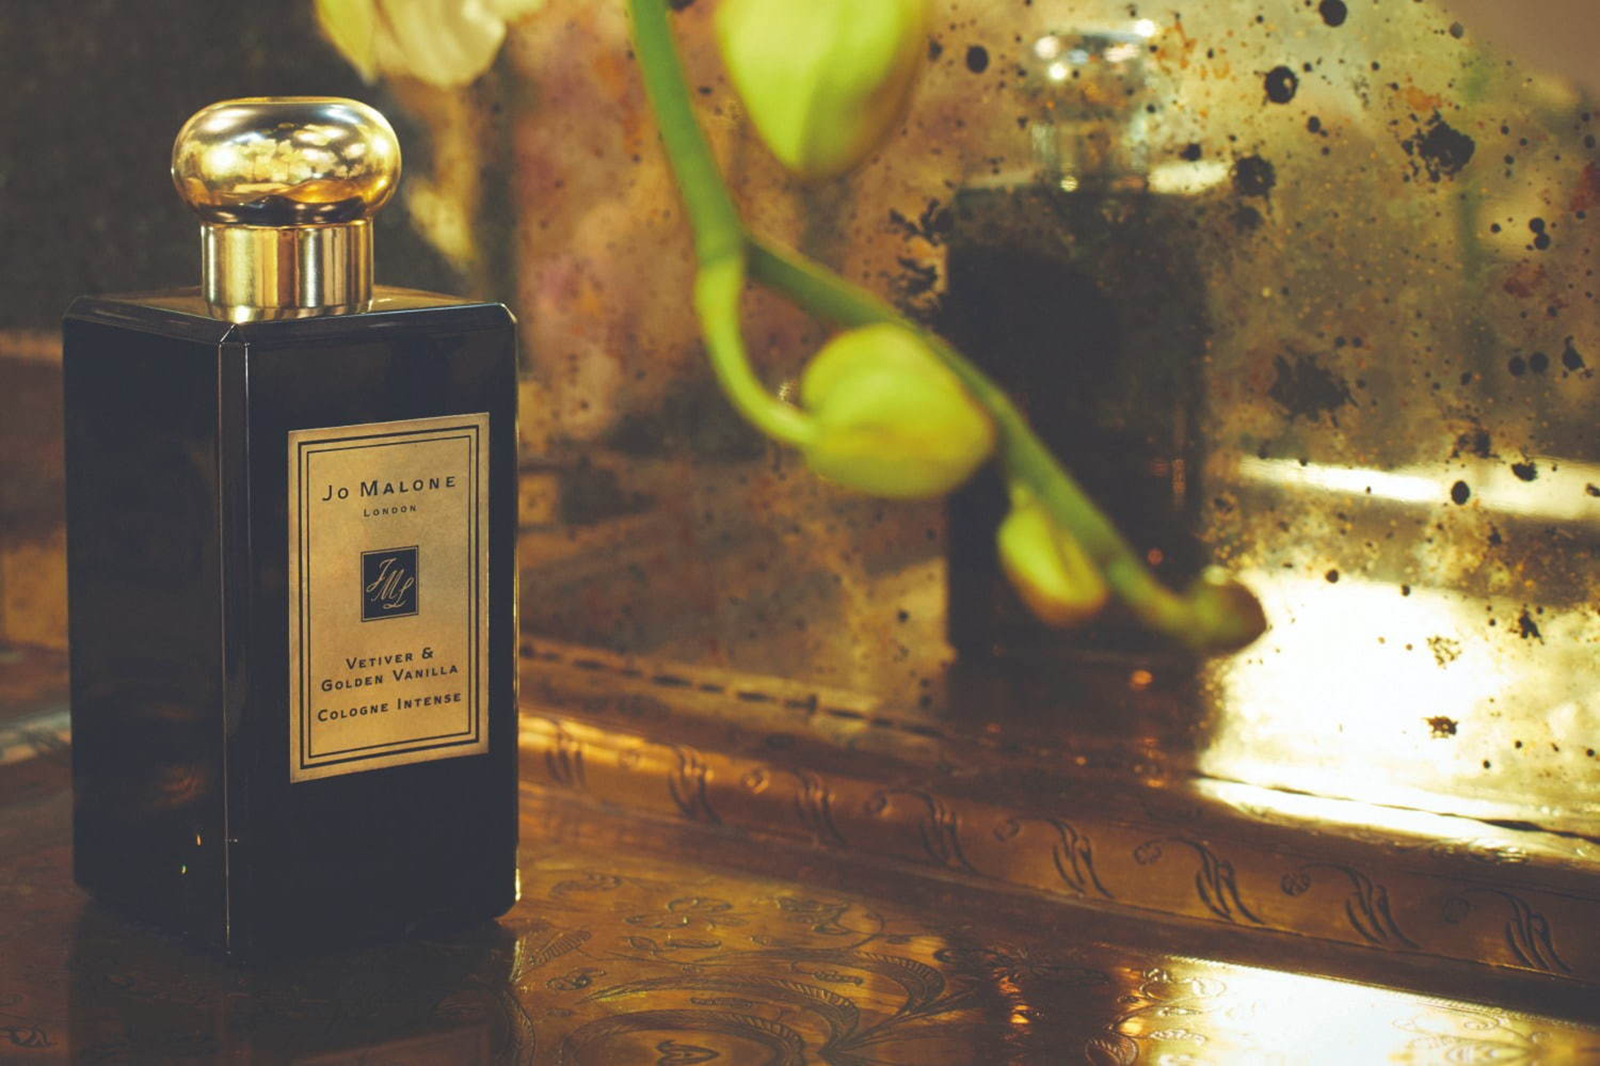 Vetiver & Golden Vanilla Cologne Intense di JO MALONE